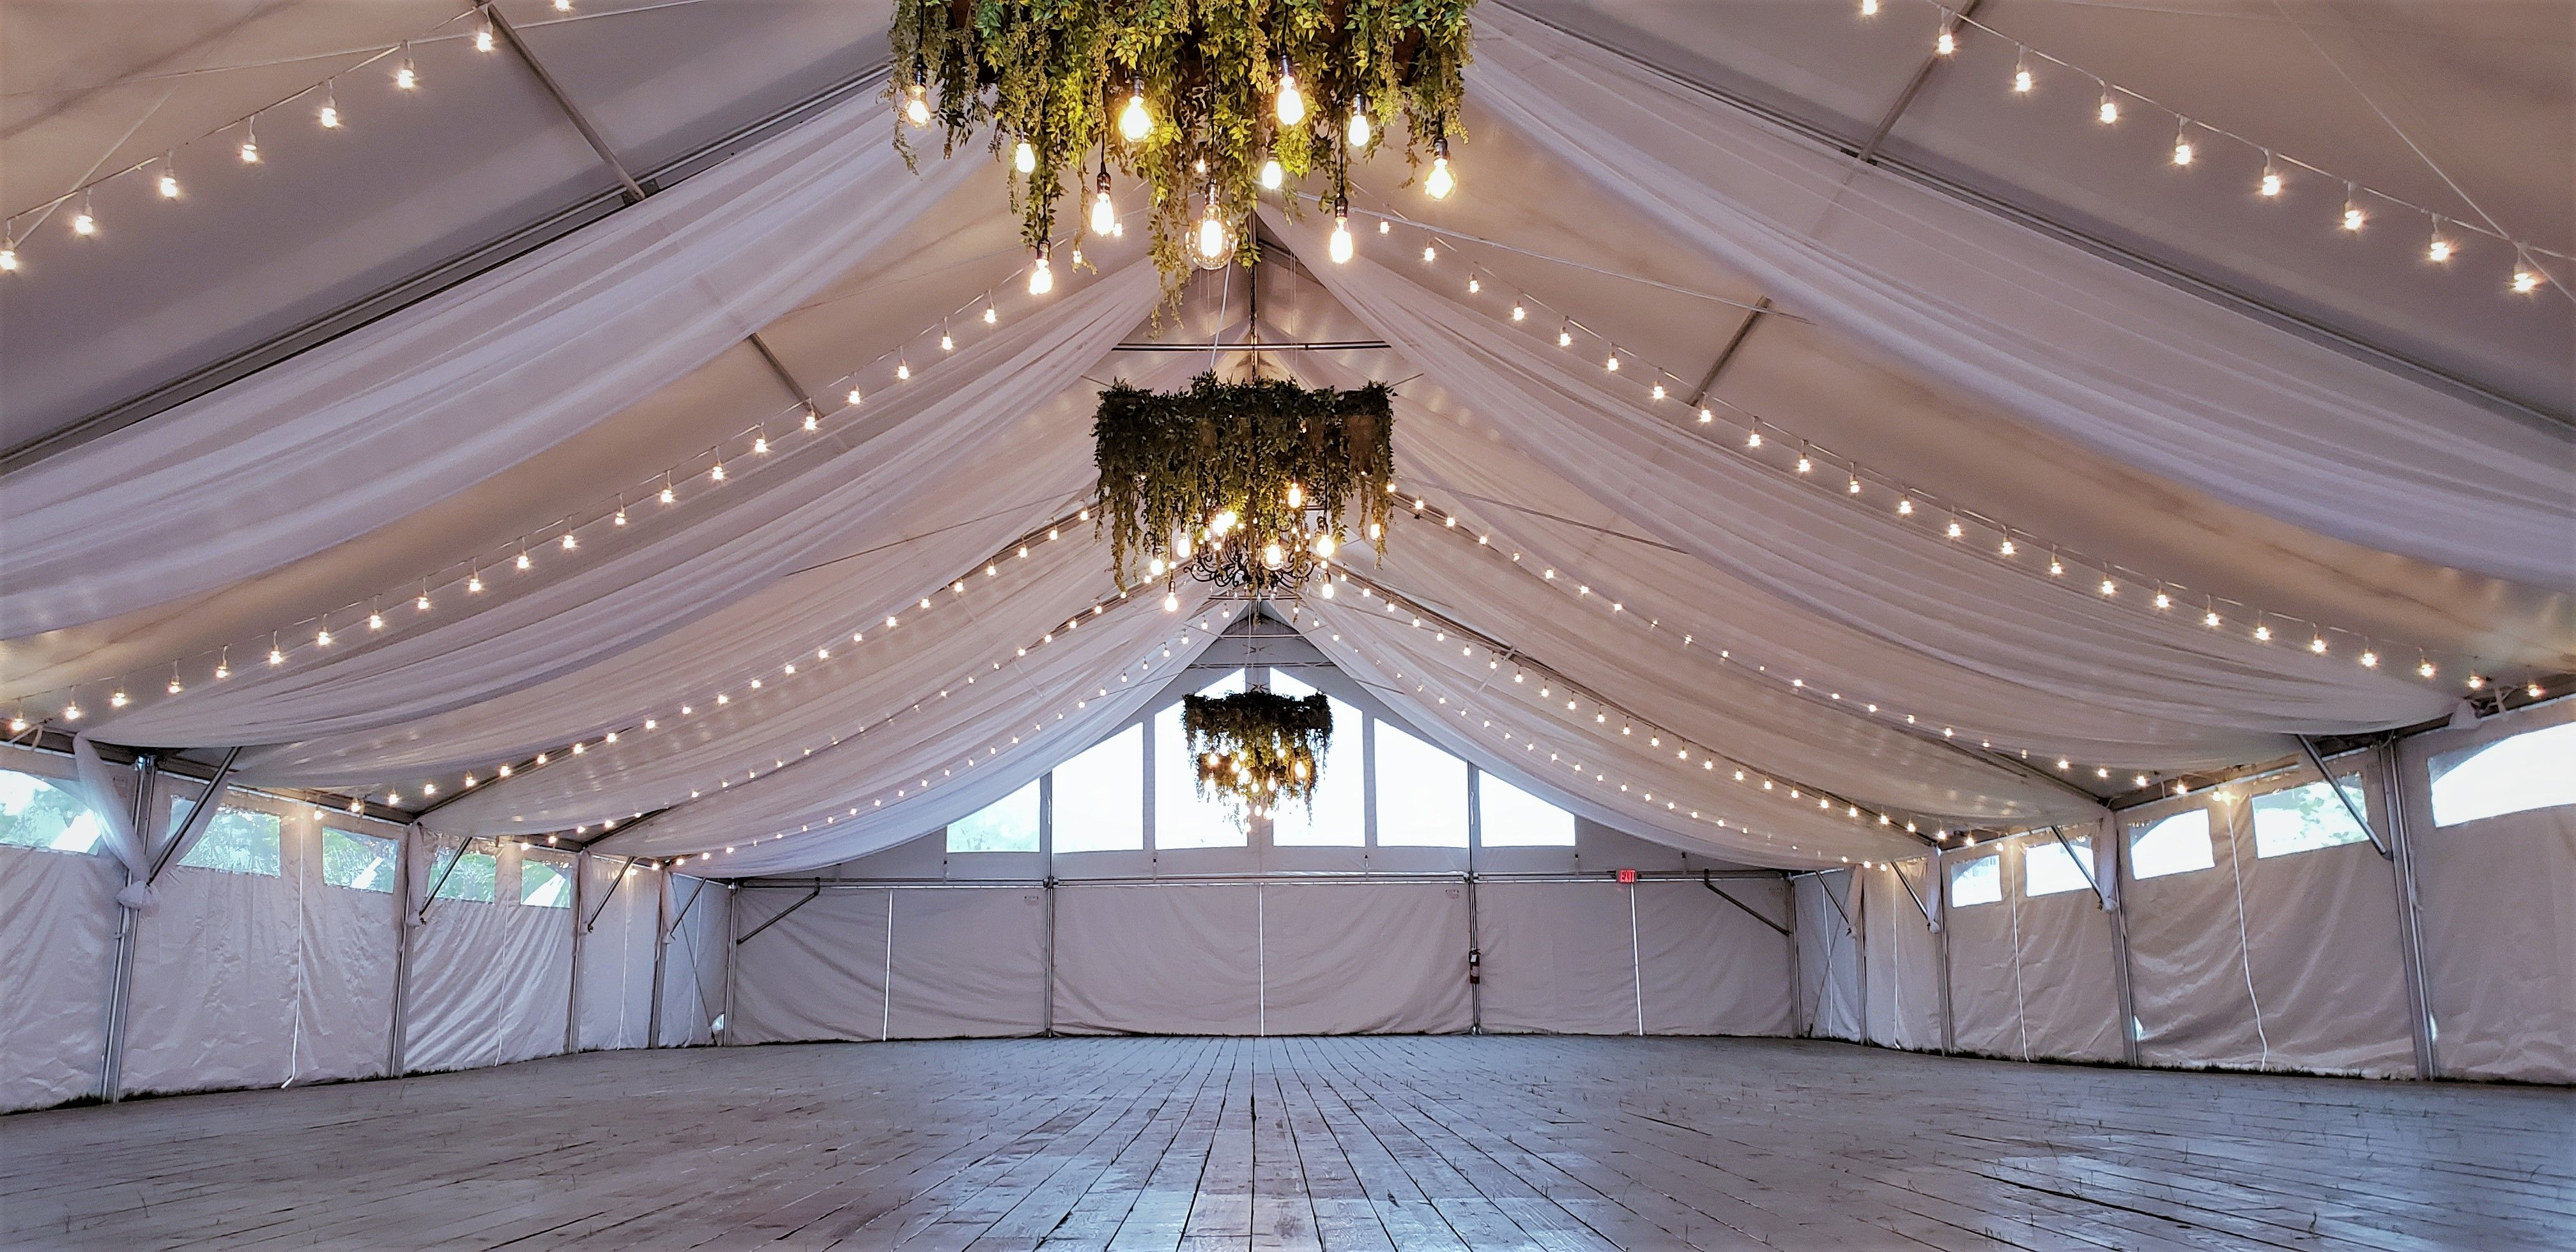 Bistro Lights And Draping In A Frame Tent Event Tent Decor